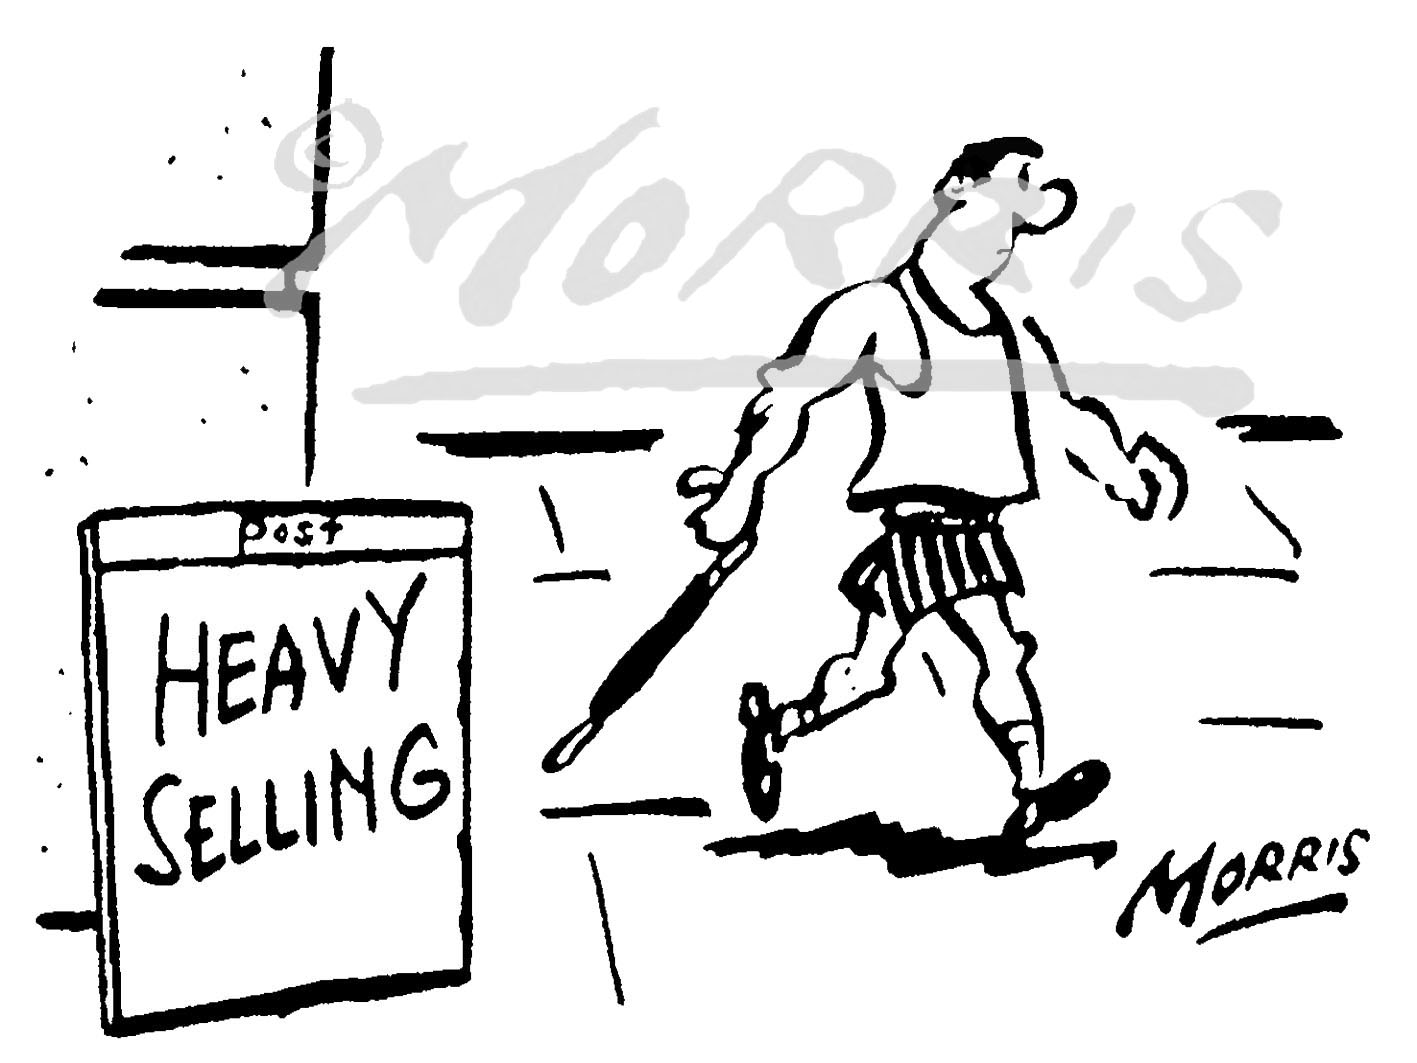 Stock Market heavy selling cartoon – Ref: 4832bw